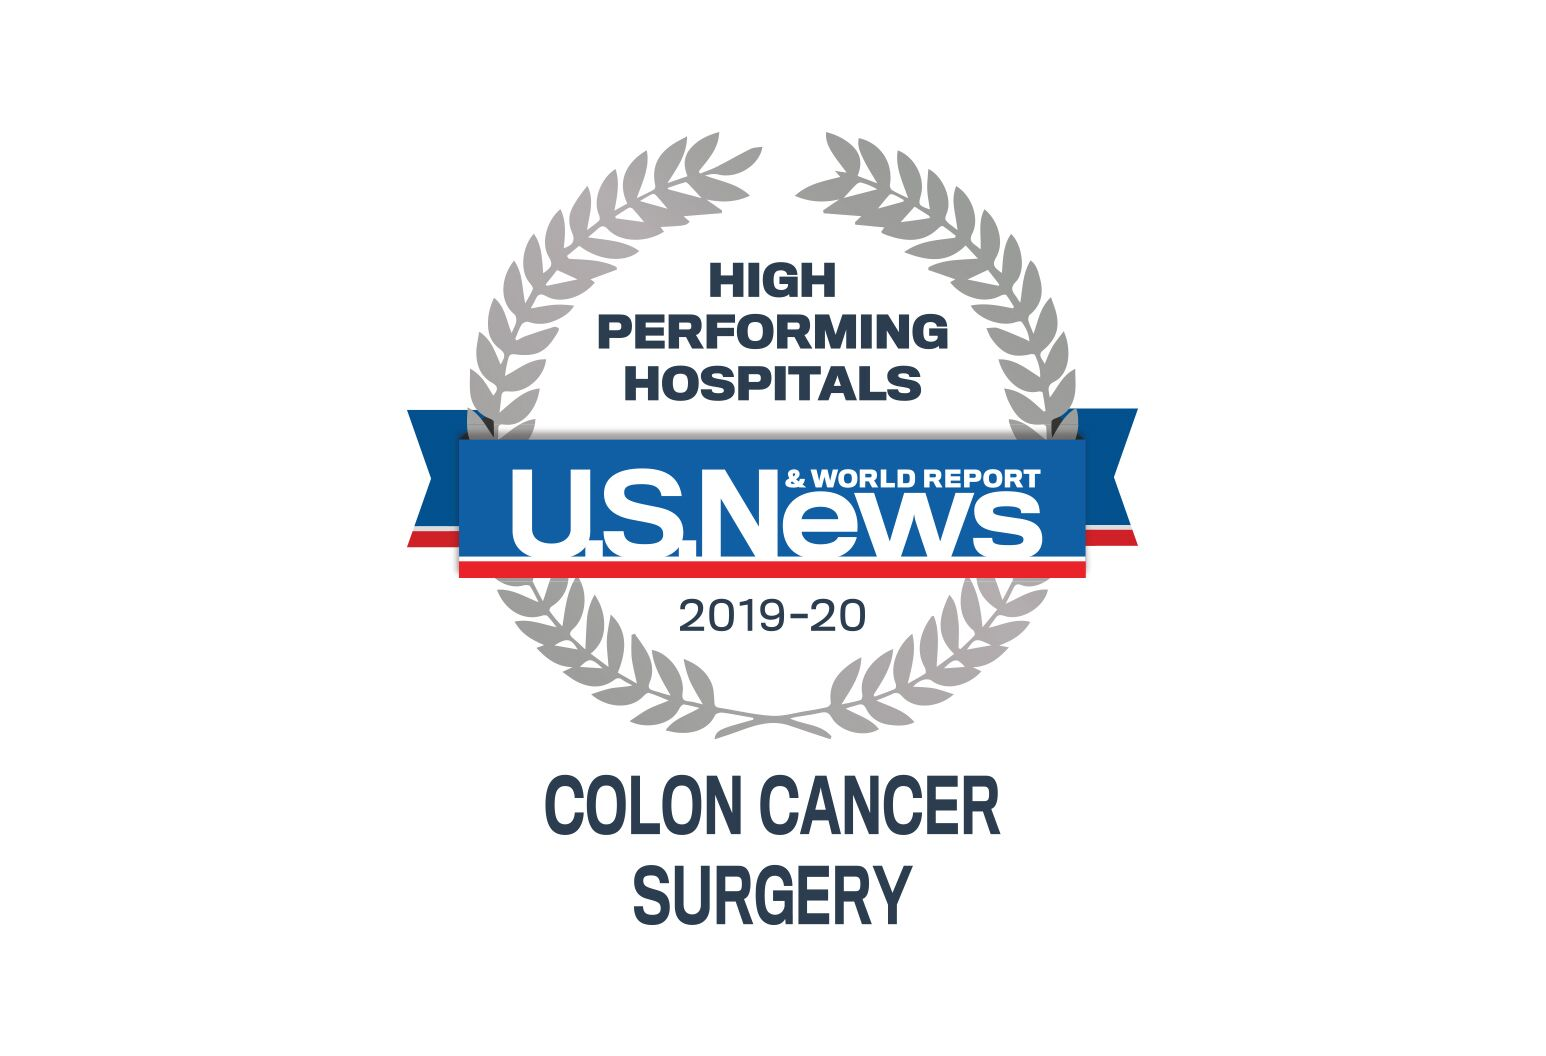 US news badge showing high performance in colon cancer surgery